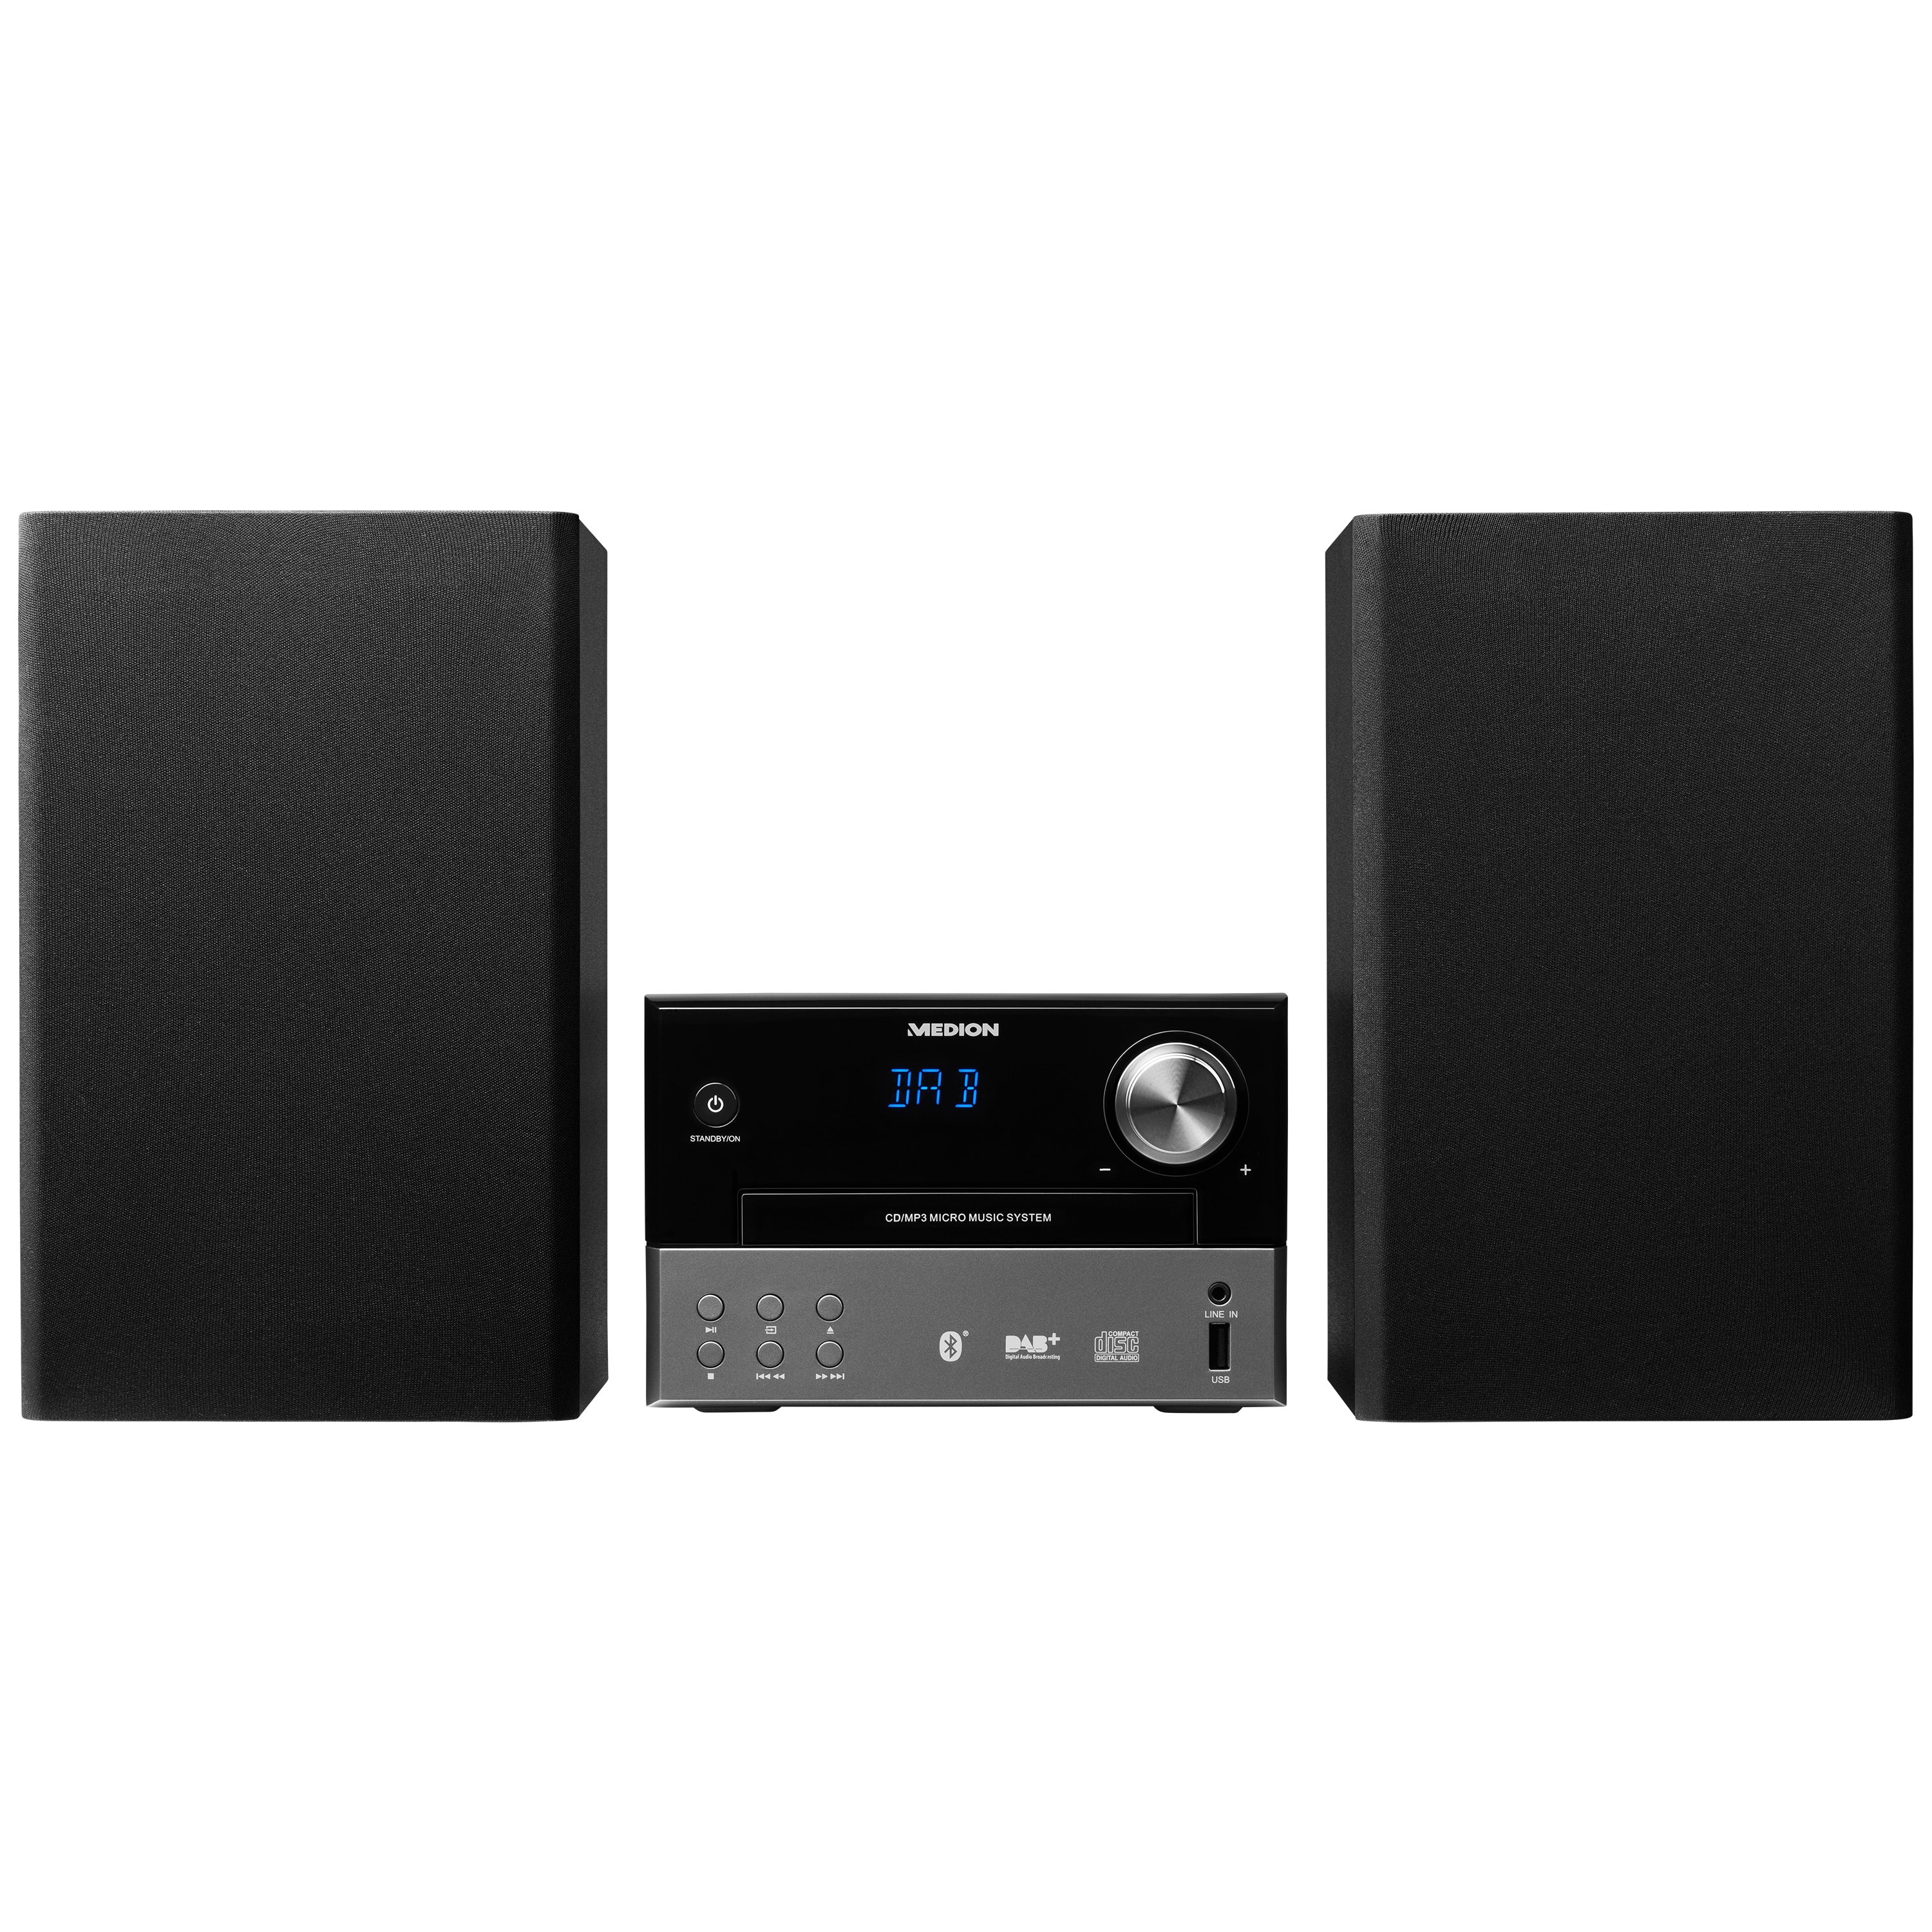 MEDION® LIFE® P64190 Mikro Audio System mit DAB+ und Bluetooth, CD/MP3-Player, USB, AUX-Eingang, UKW/MW-Radio, 2 x 15 W RMS